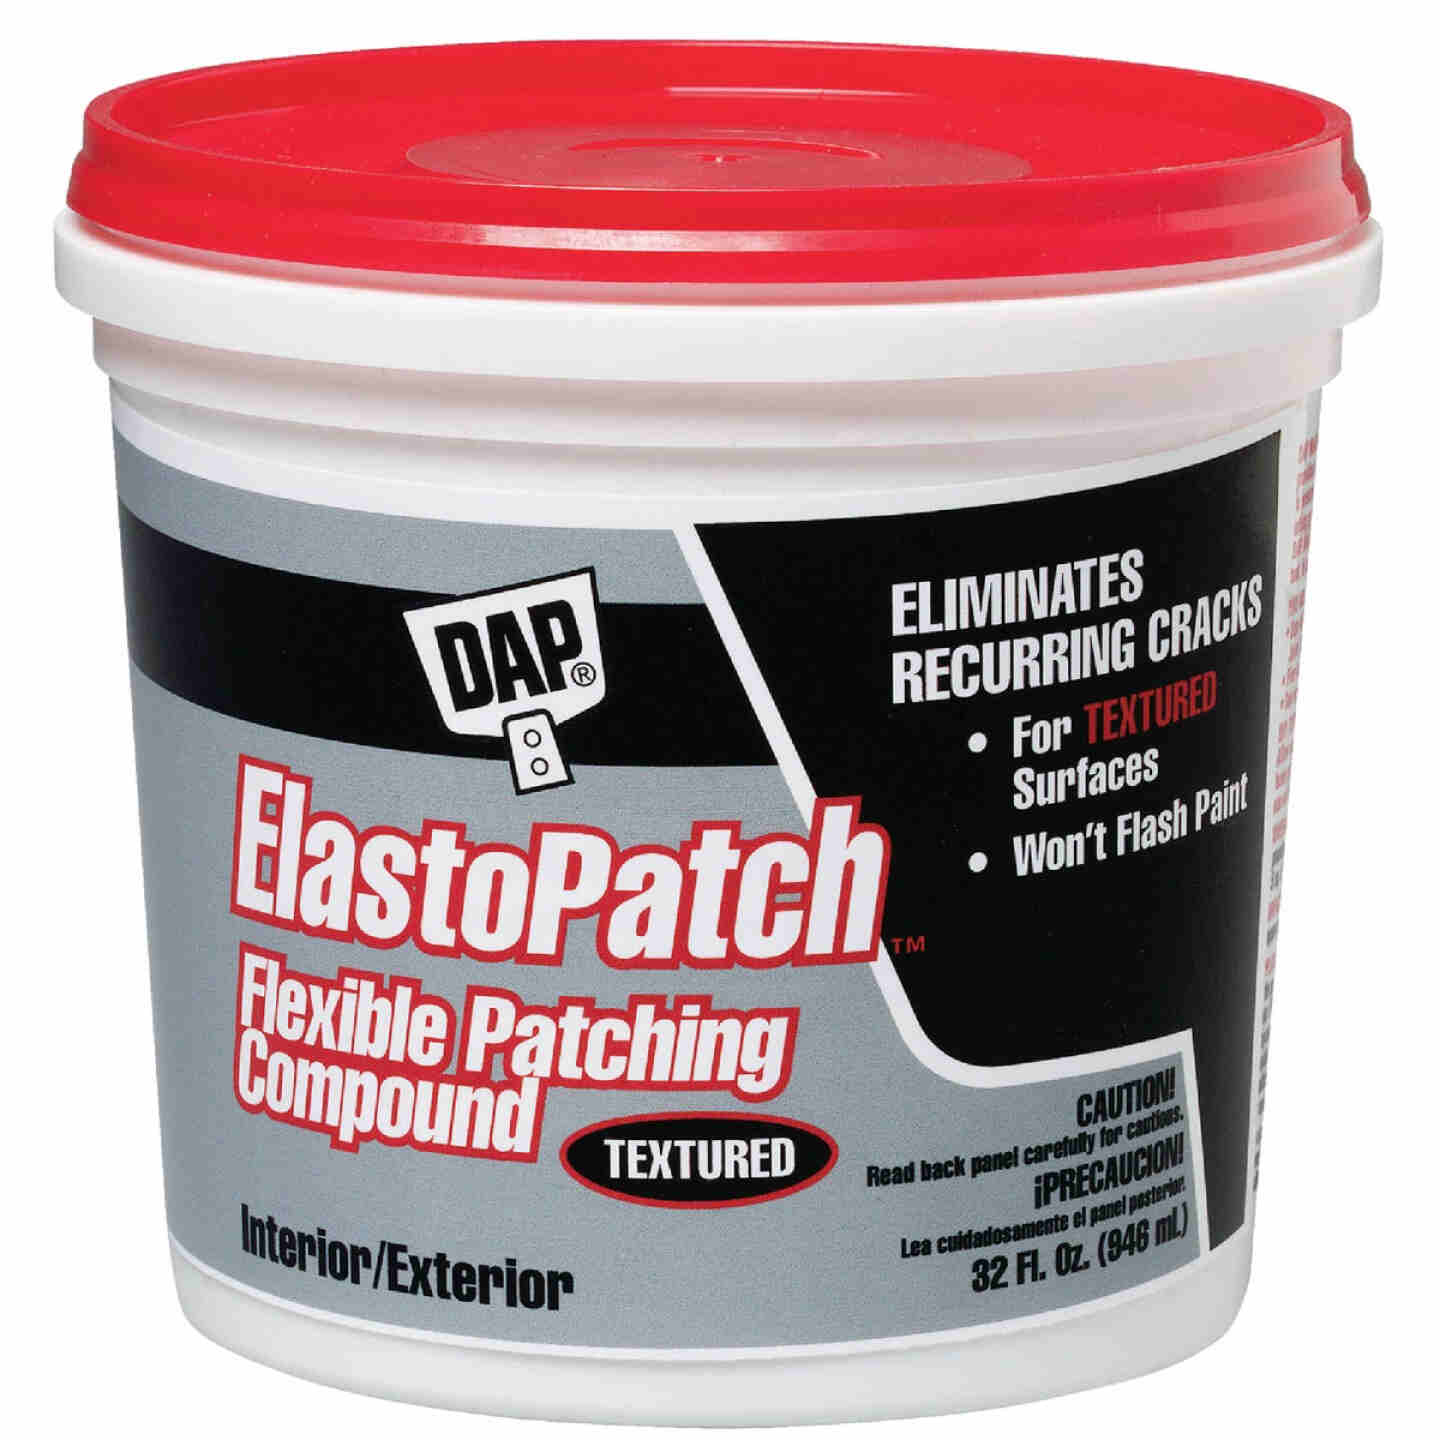 DAP ElastoPatch Quart Off-White Patching Compound Image 1